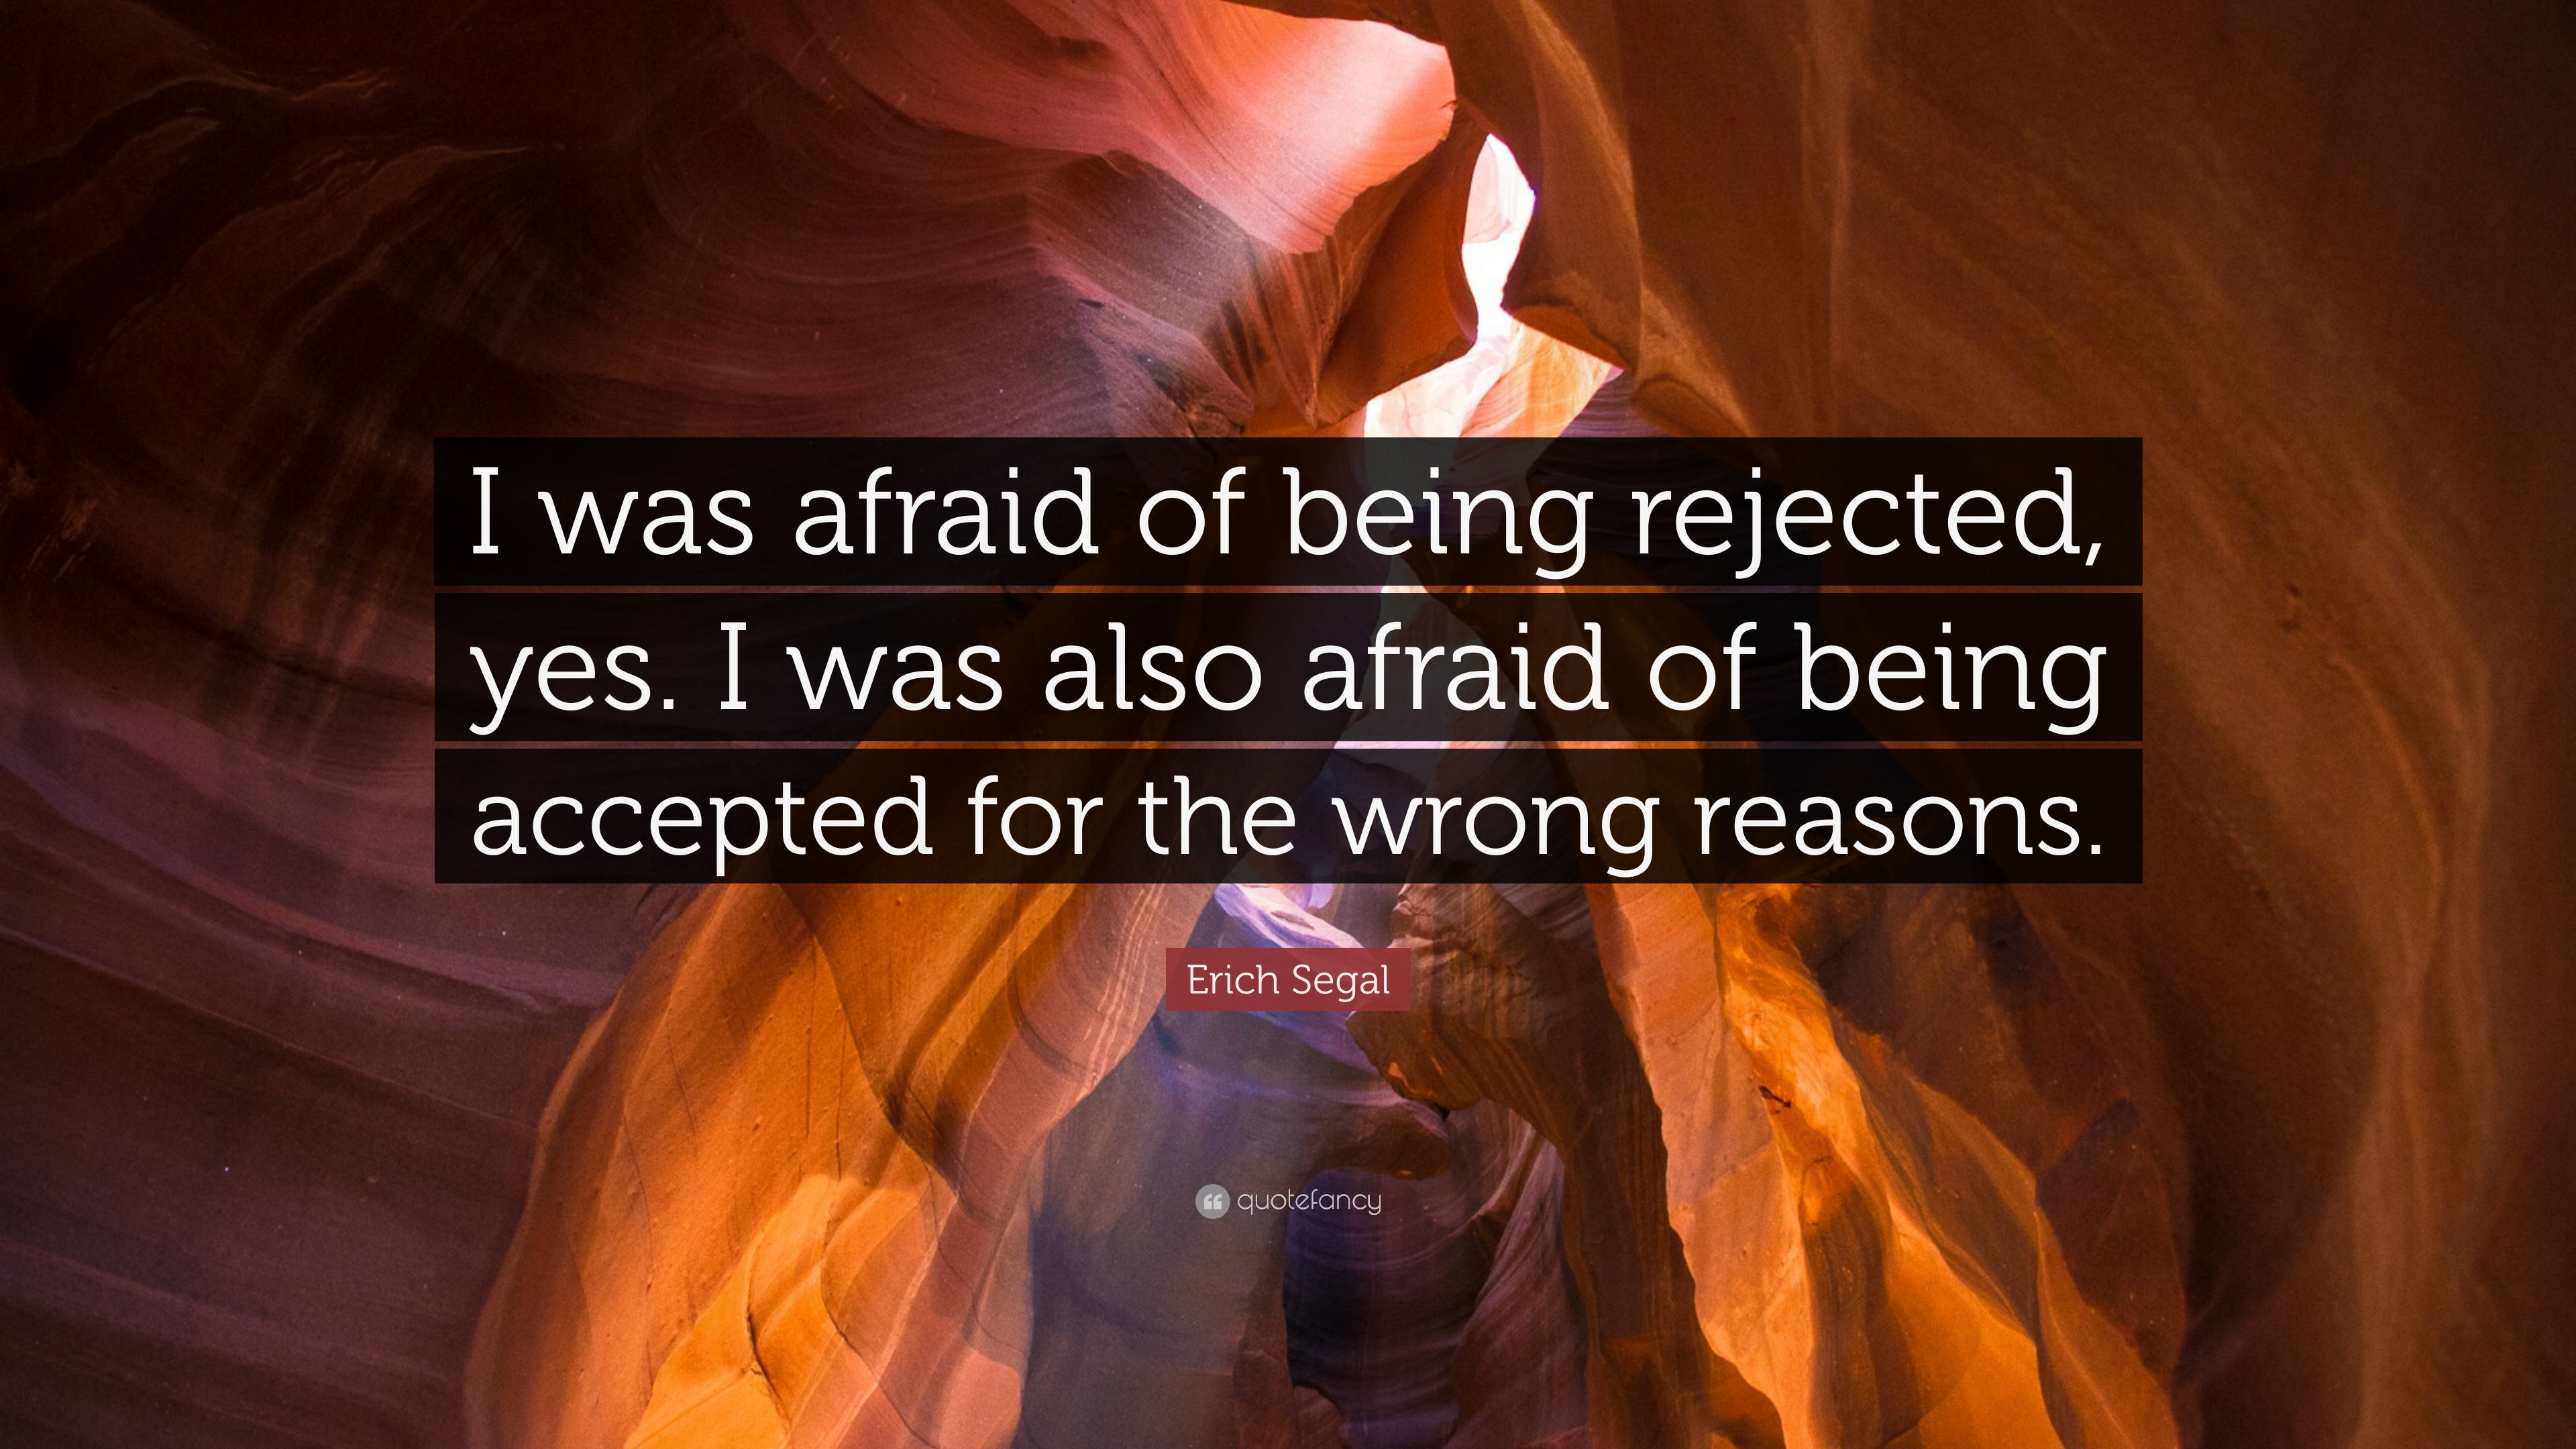 the fear of being rejected